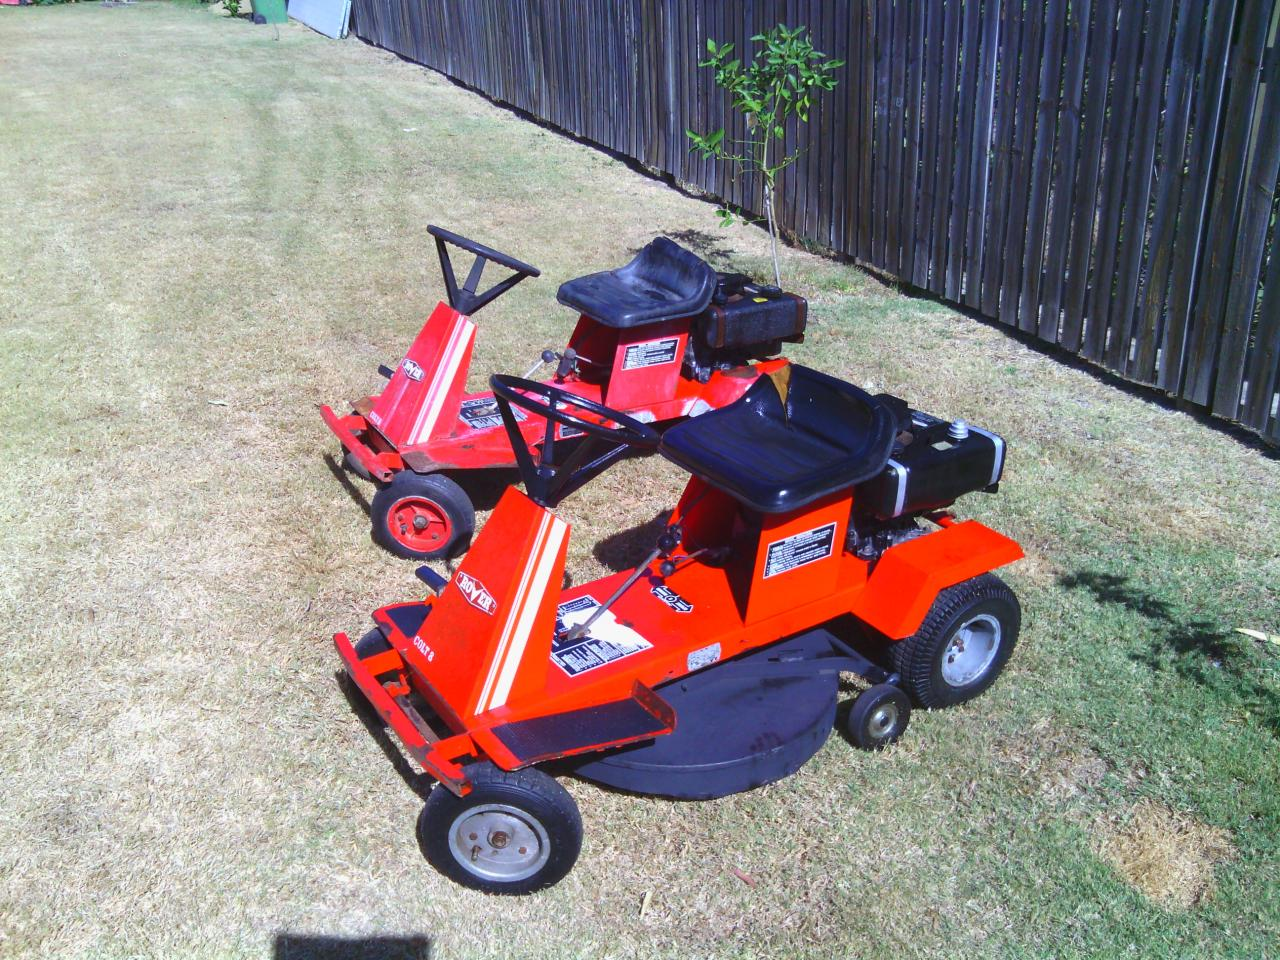 Rover Colt 8 Wiring Diagram Reinvent Your Mower Ride On Mowers Top Car Release 2019 2020 Rh Hometownerx Com Simple Diagrams Hvac